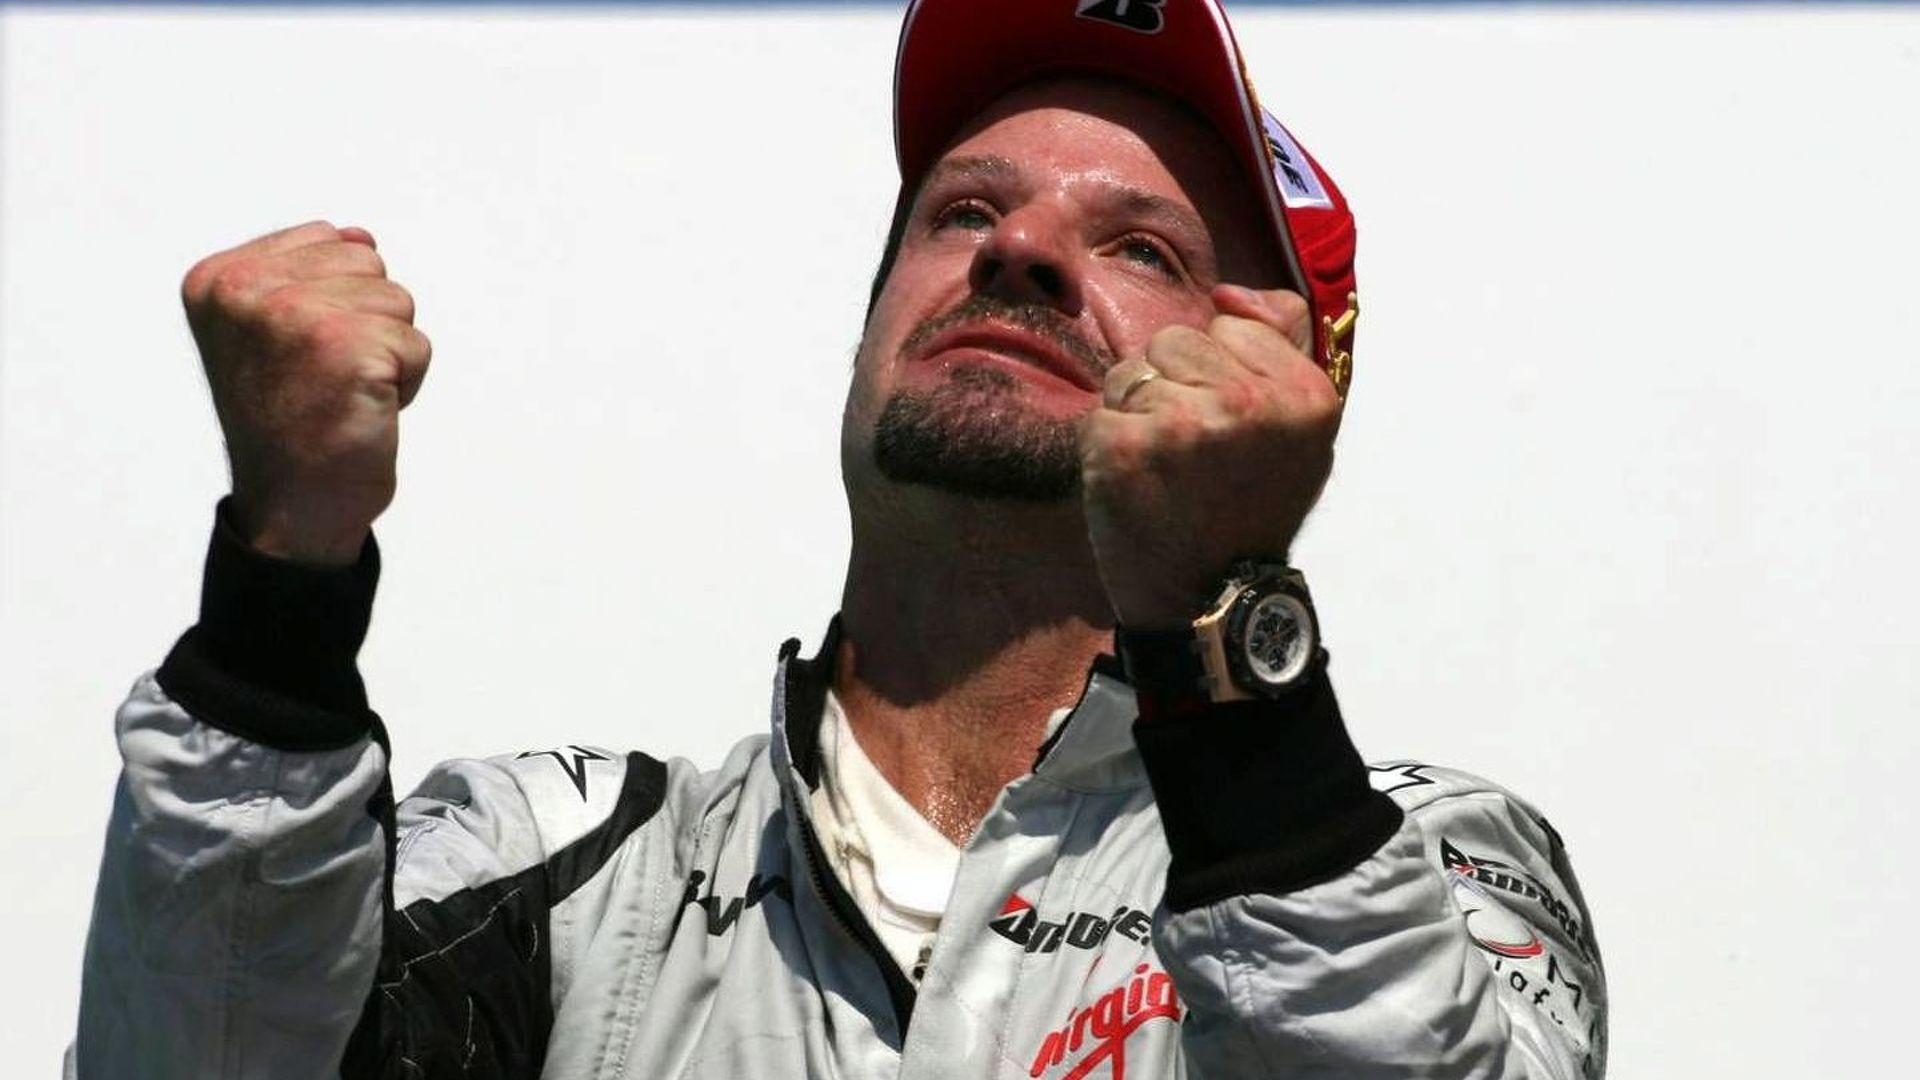 Google to pay Barrichello $500,000 for online libel